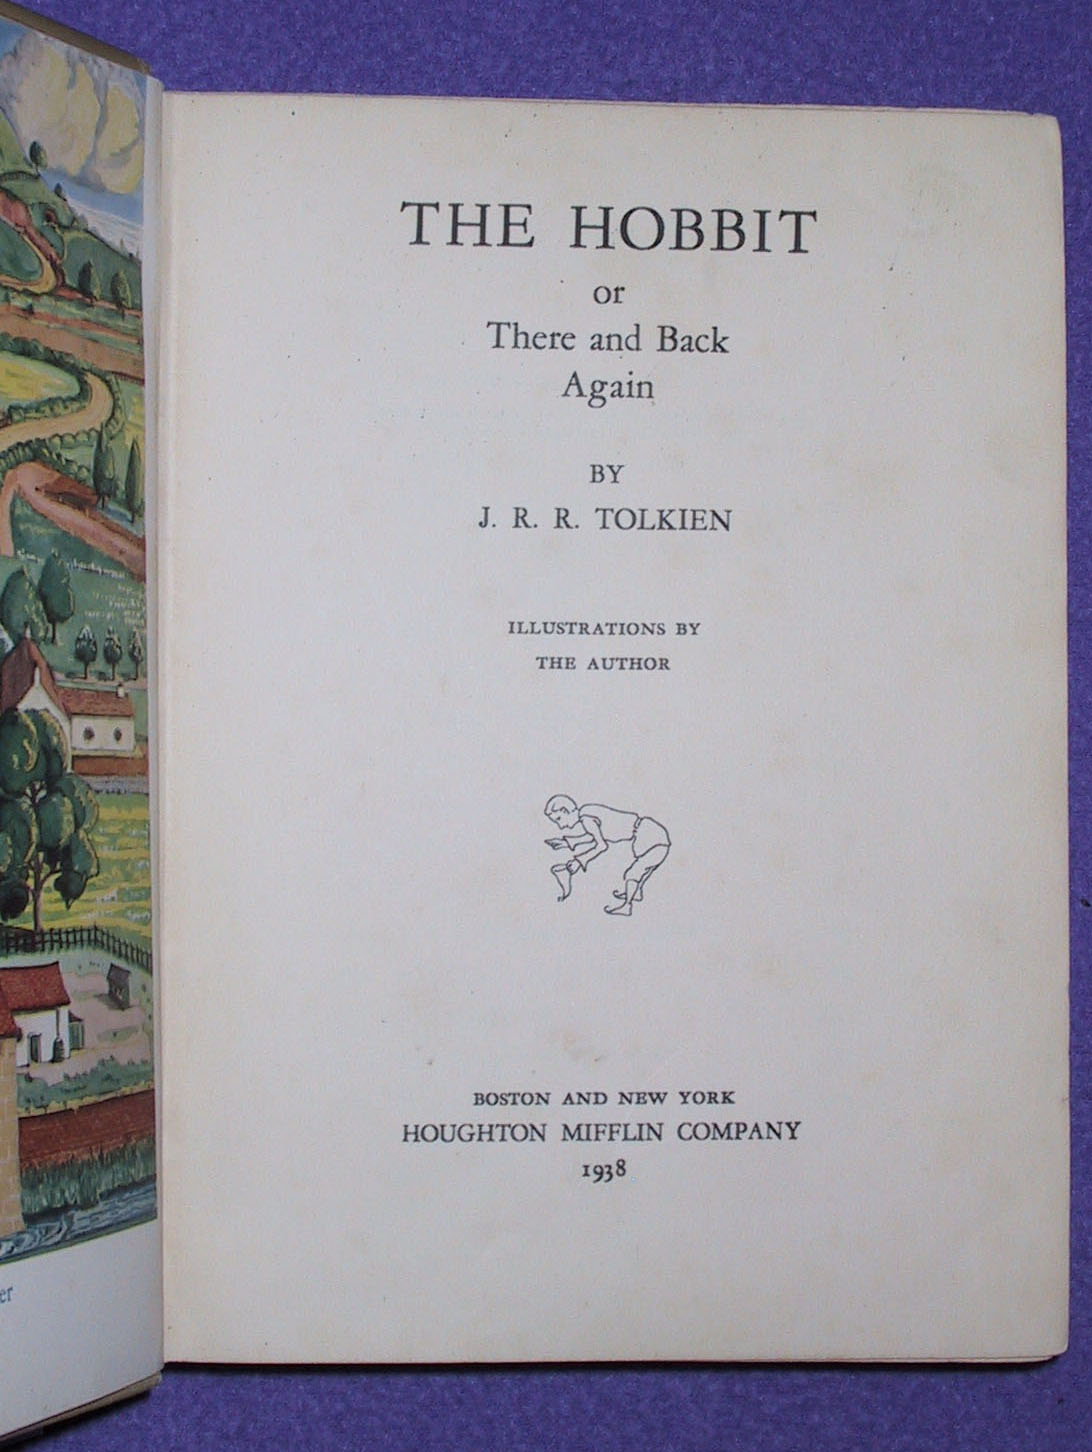 Title page of the first American edition of The Hobbit.